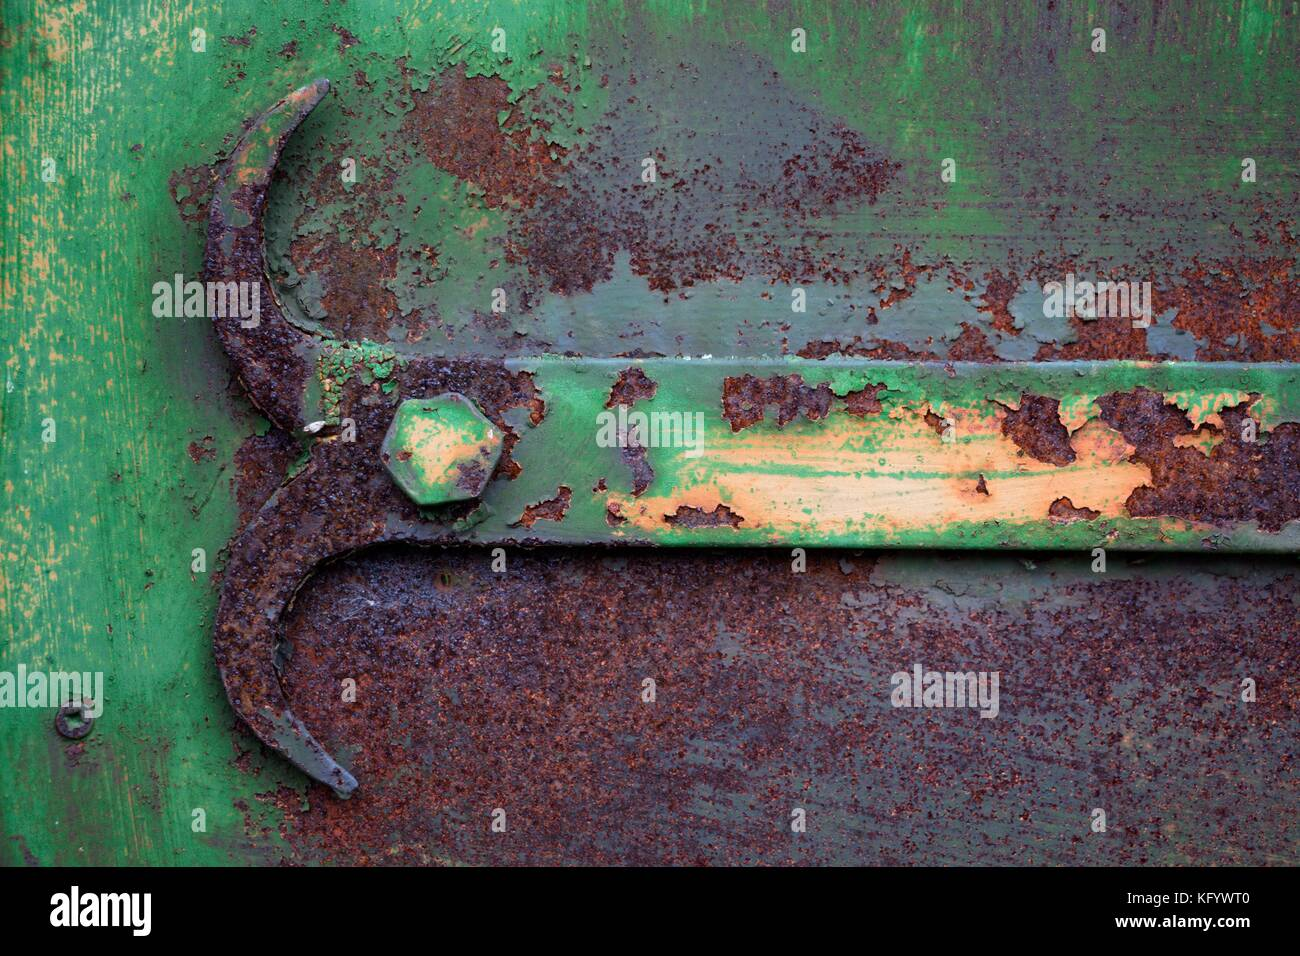 Part of the mechanism for opening the door, painted in a green tint and heavily rusted, spoiled by time. The mechanism - Stock Image